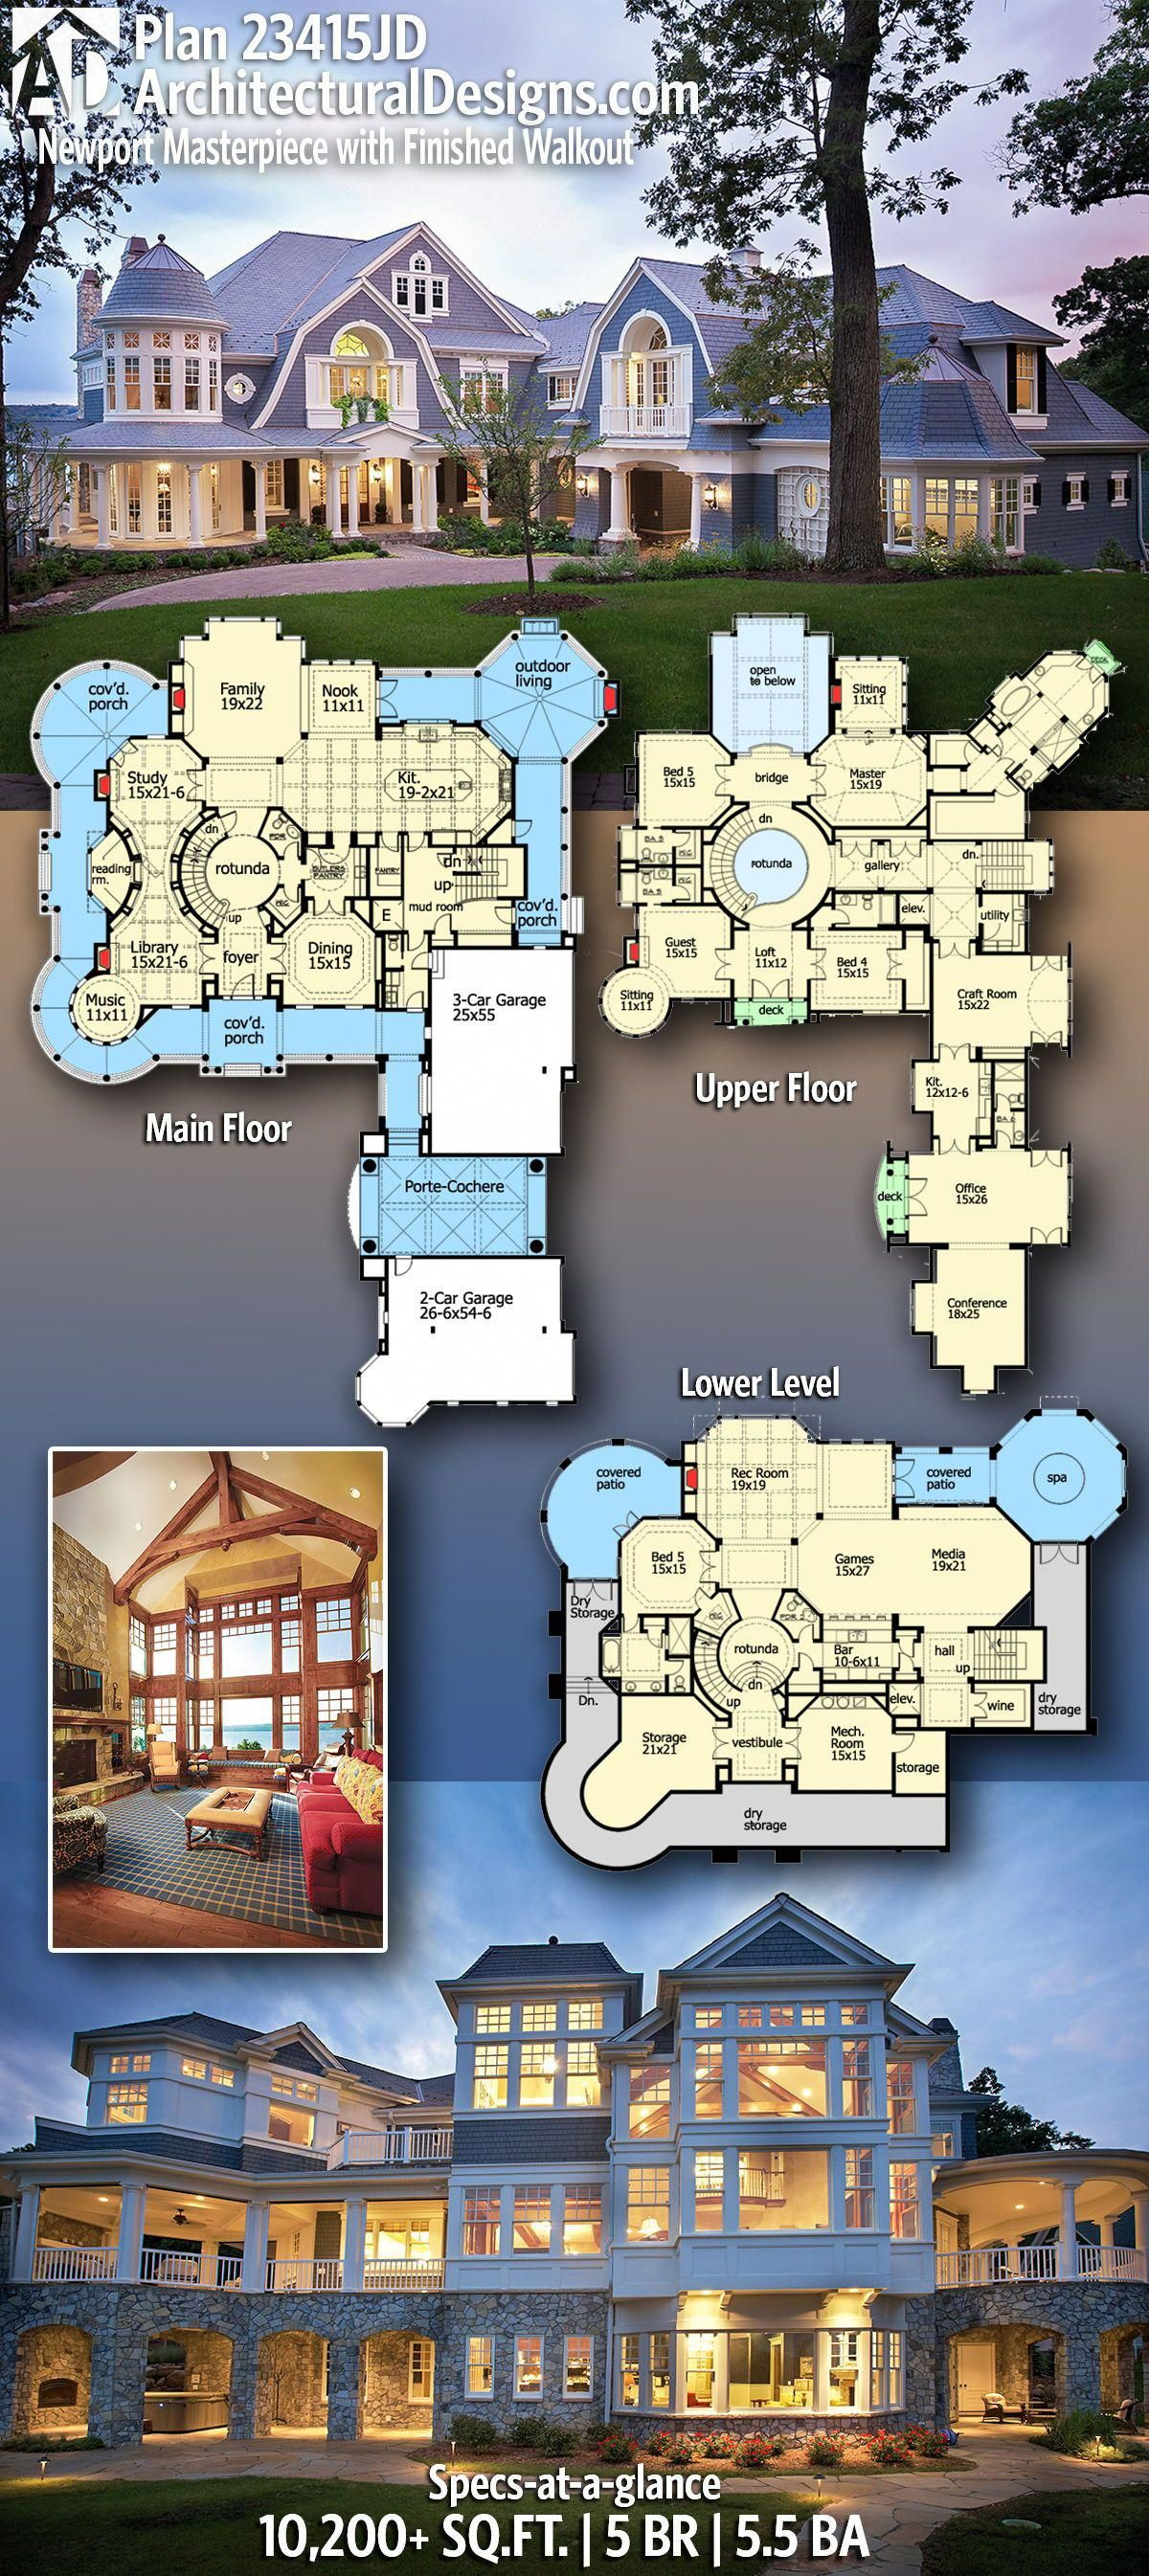 Architectural Designs Nantucket Shingle Style House Plan 23415jd Gives You 5 Bedrooms 5 5 Baths In J House Plans Mansion Bedroom House Plans Dream House Plans